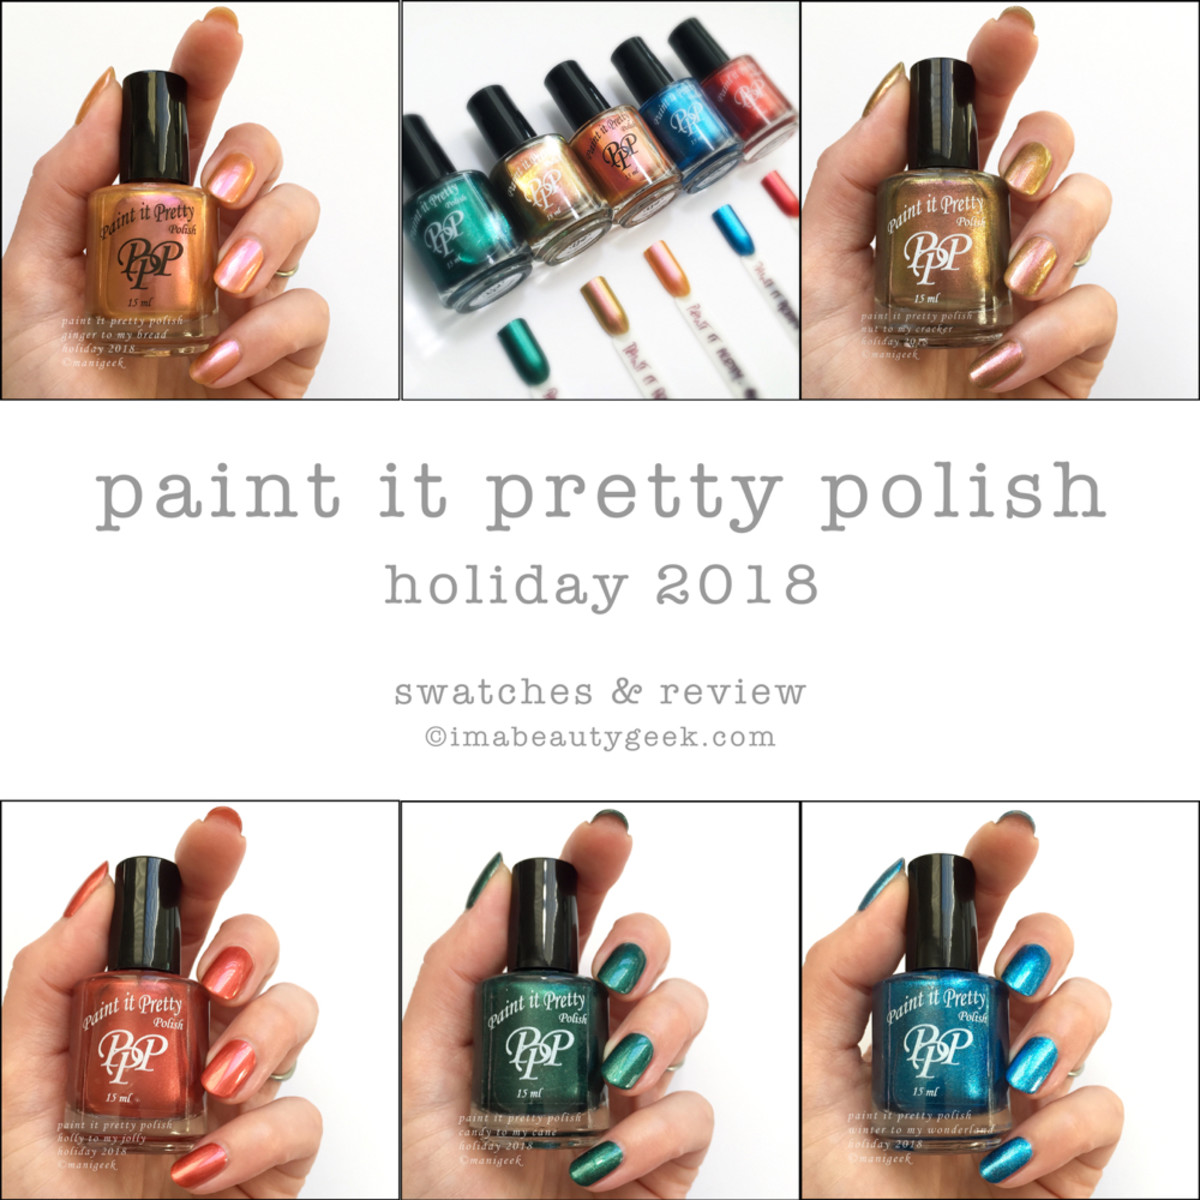 Paint it Pretty Polish Holiday 2018 Beautygeeks Composite